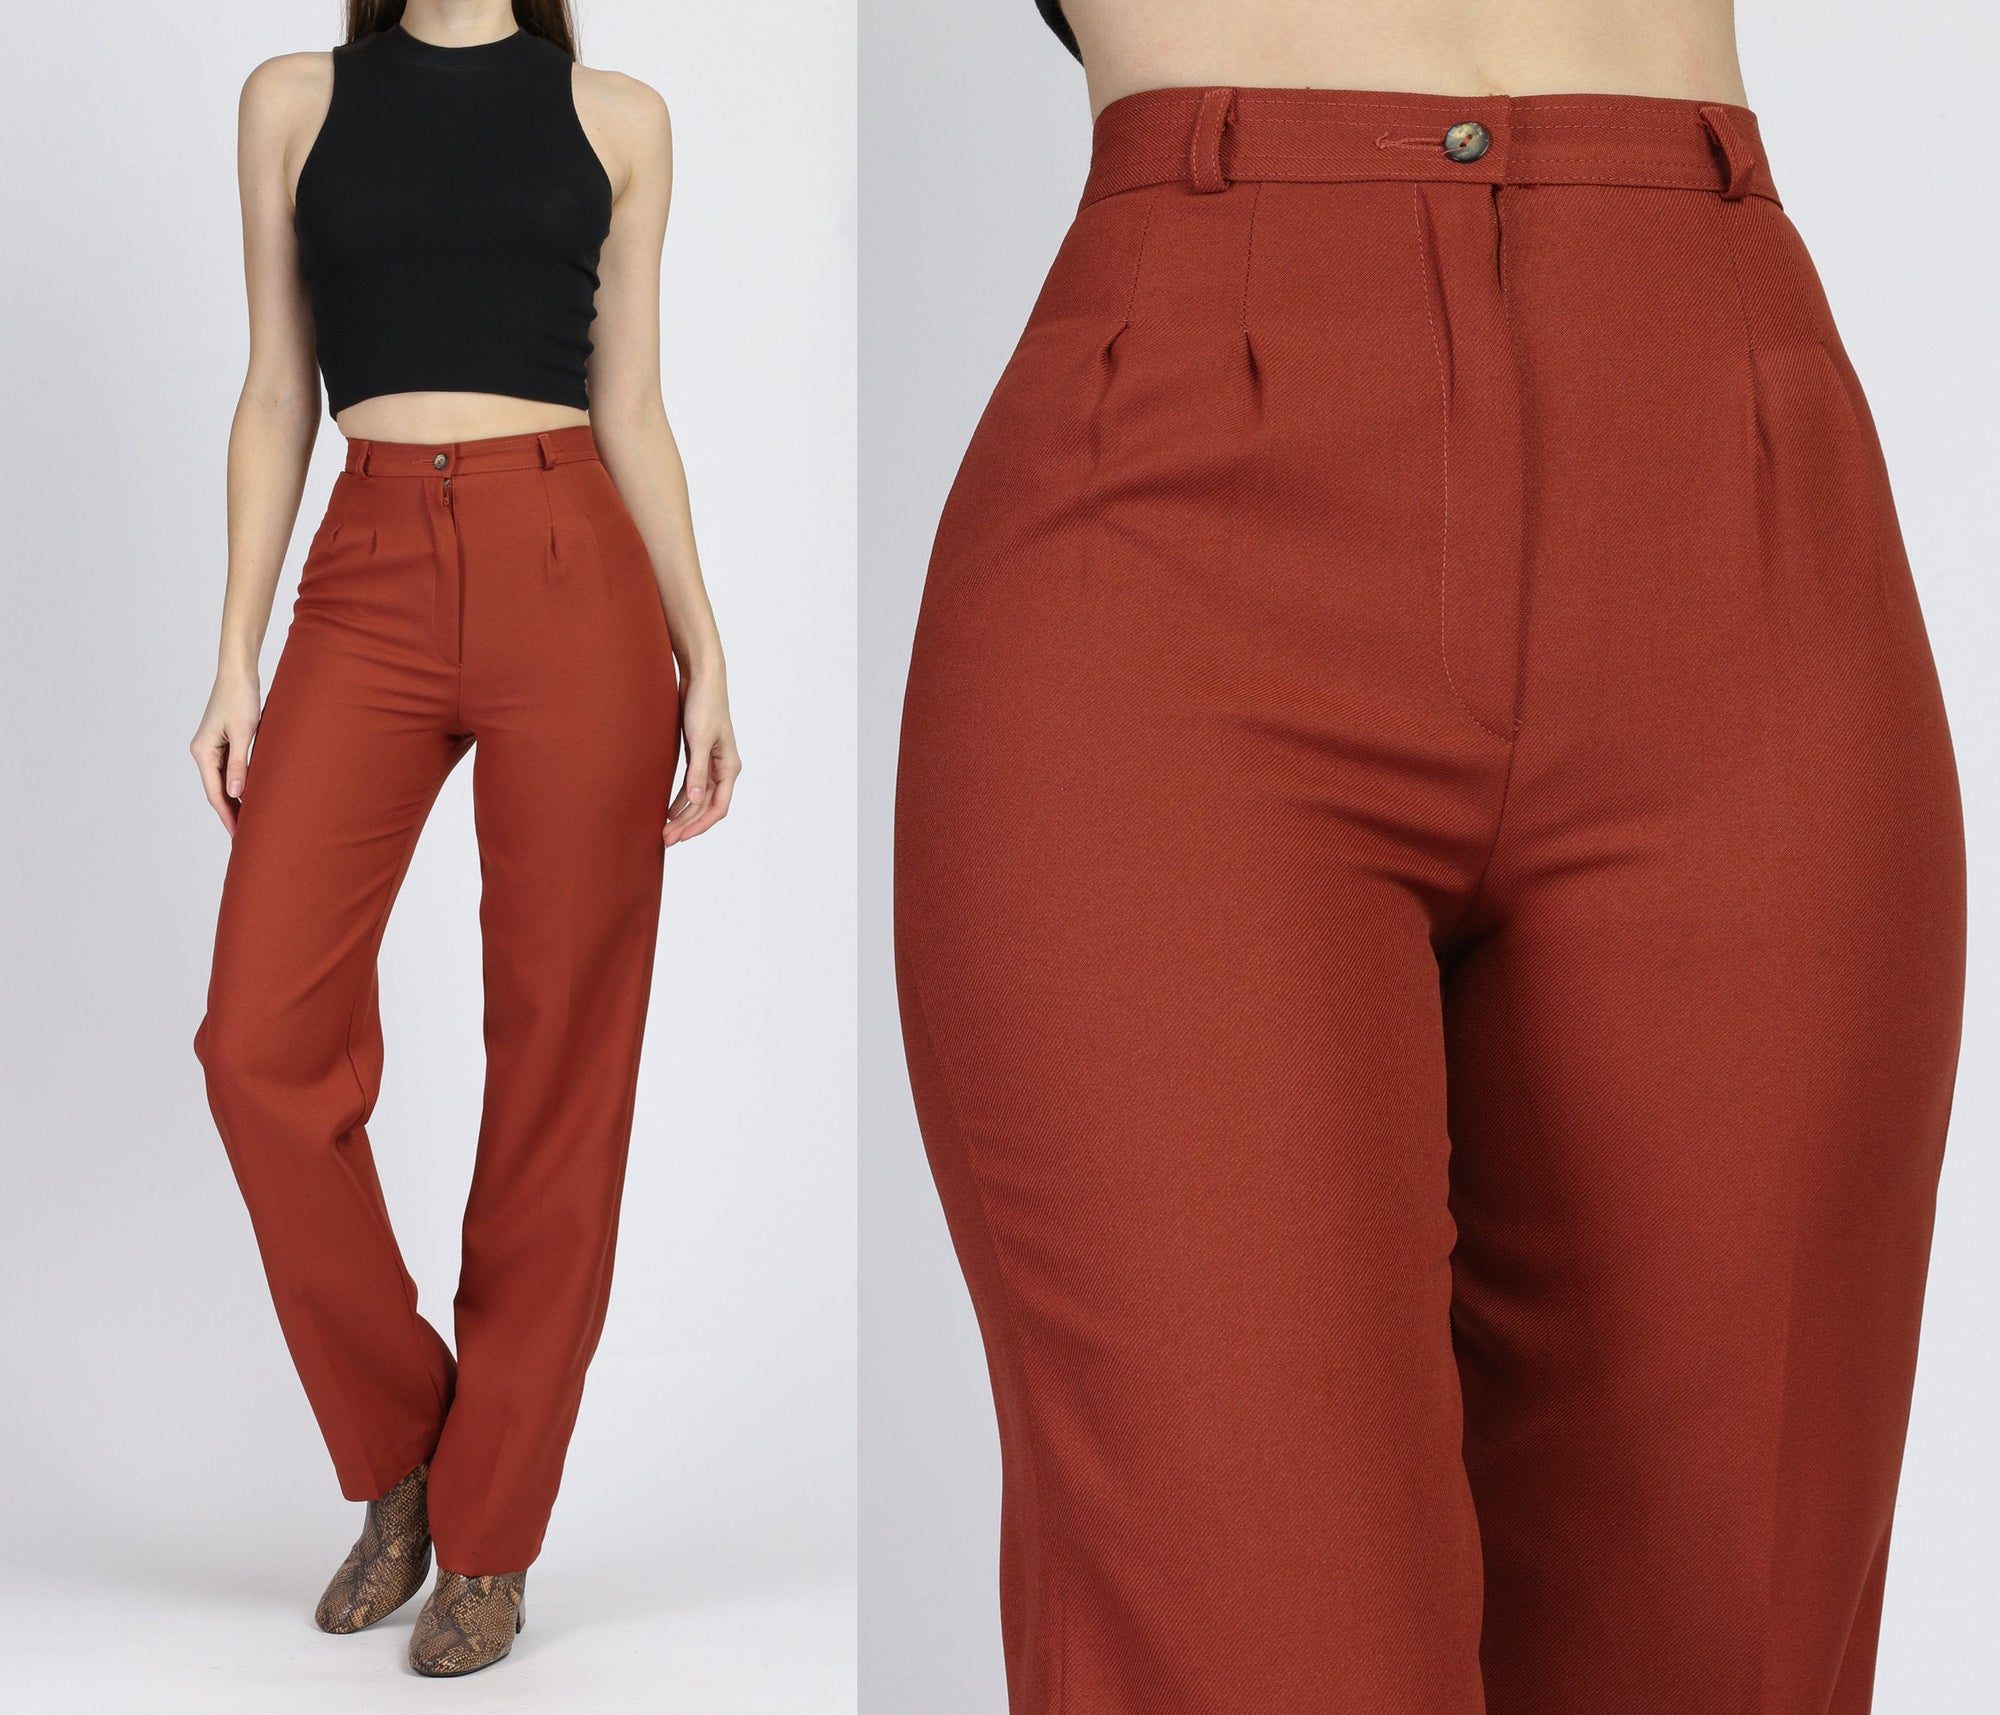 70s Rust Red High Waist Pants - Extra Small, 24""